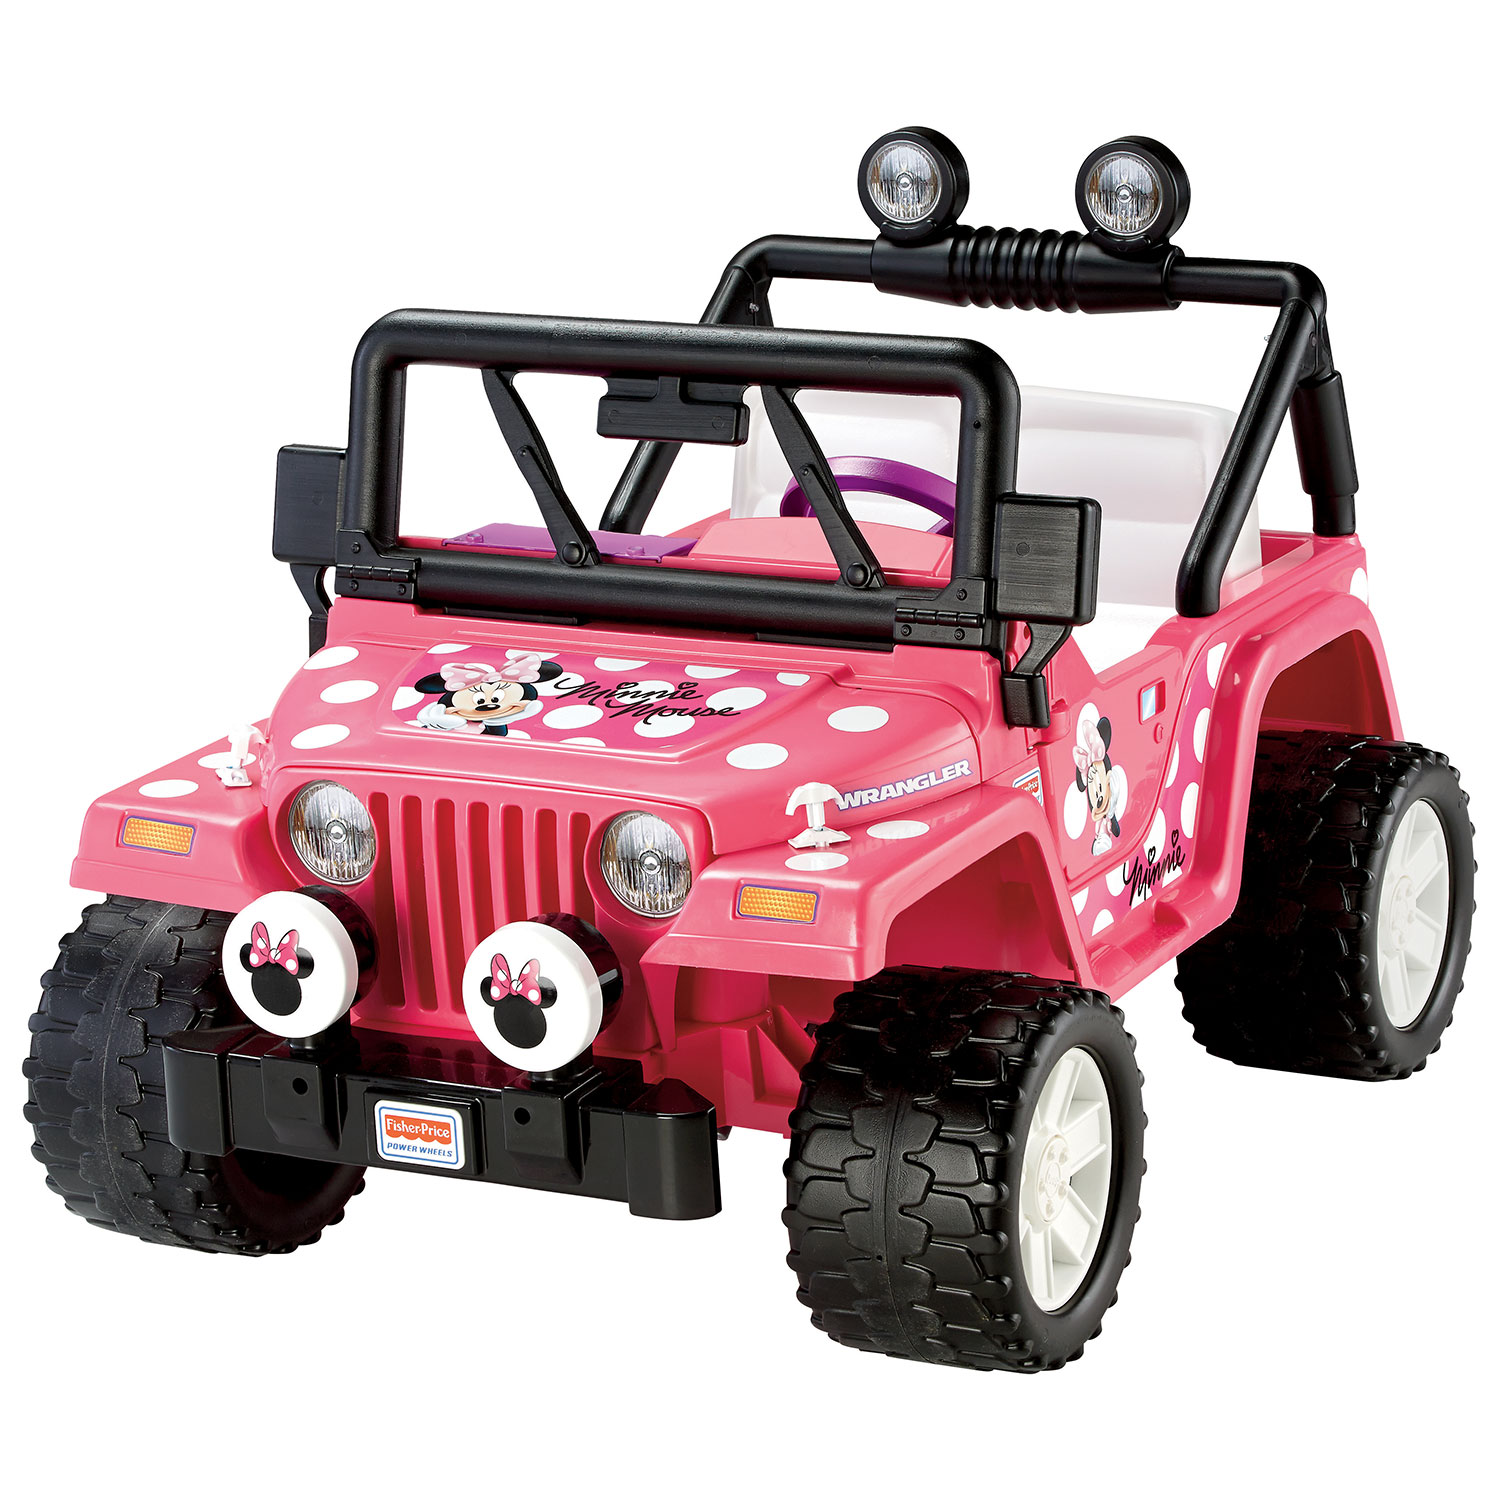 power wheels minnie mouse jeep wrangler bbm95 pink power wheels powered ride on toys best buy canada